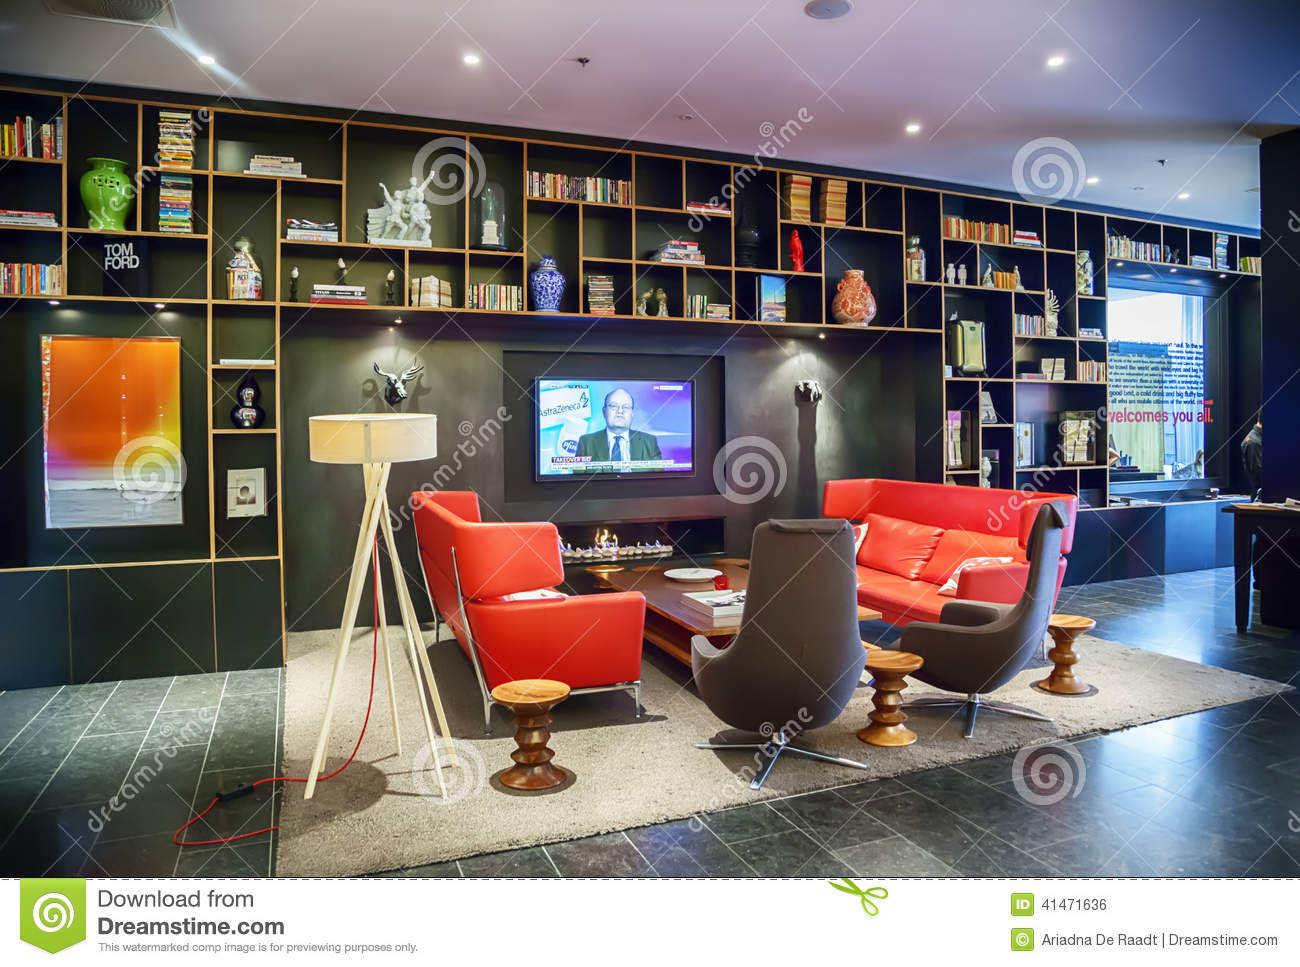 Stunning Design Hotel Citizenm London Photos - Farbideen fürs ...